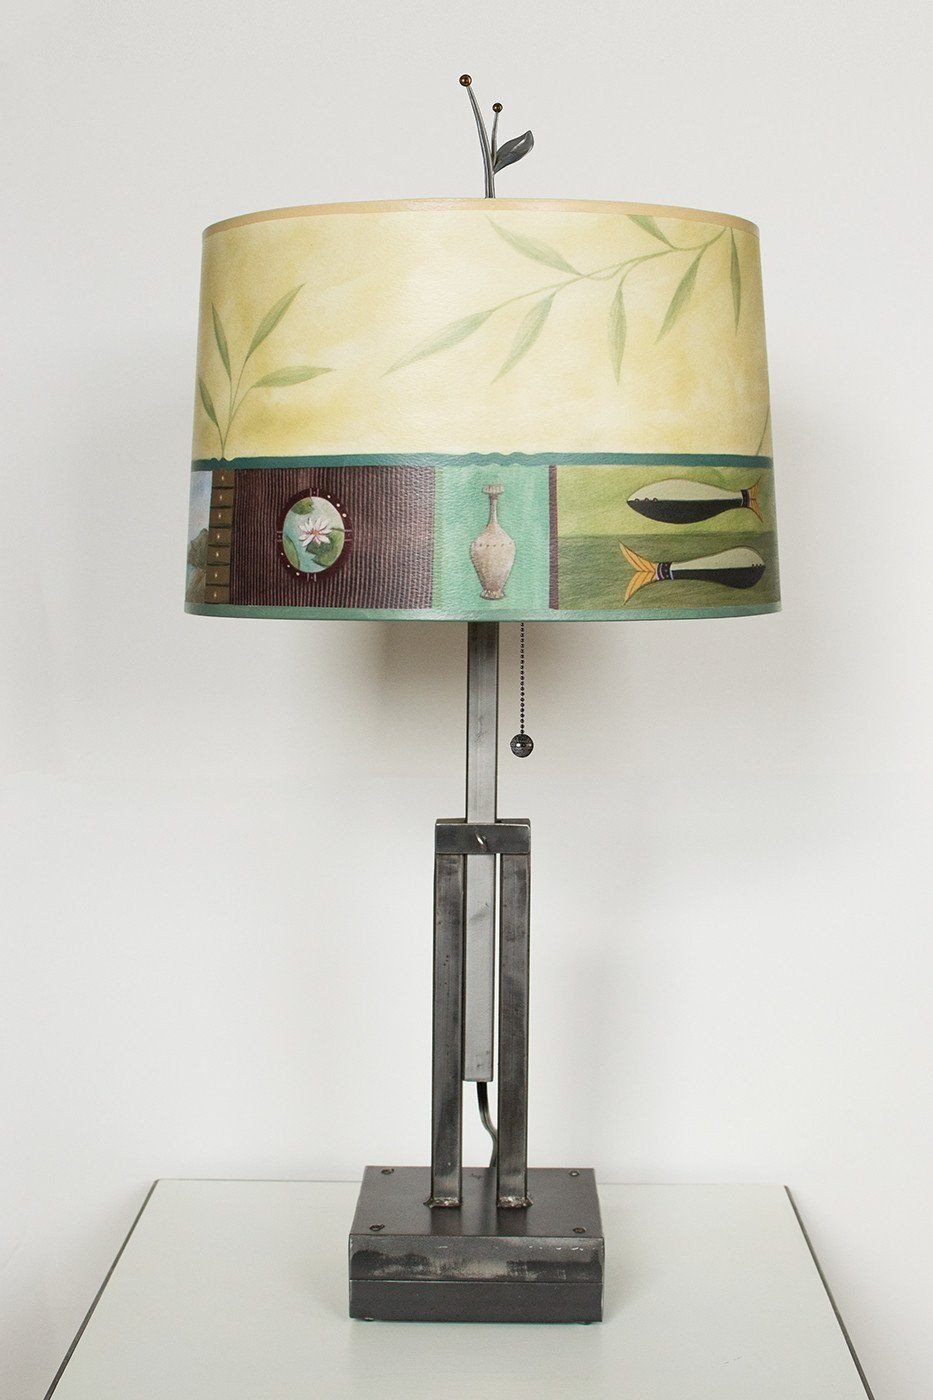 Adjustable-Height Steel Table Lamp with Large Drum Shade in Twin Fish